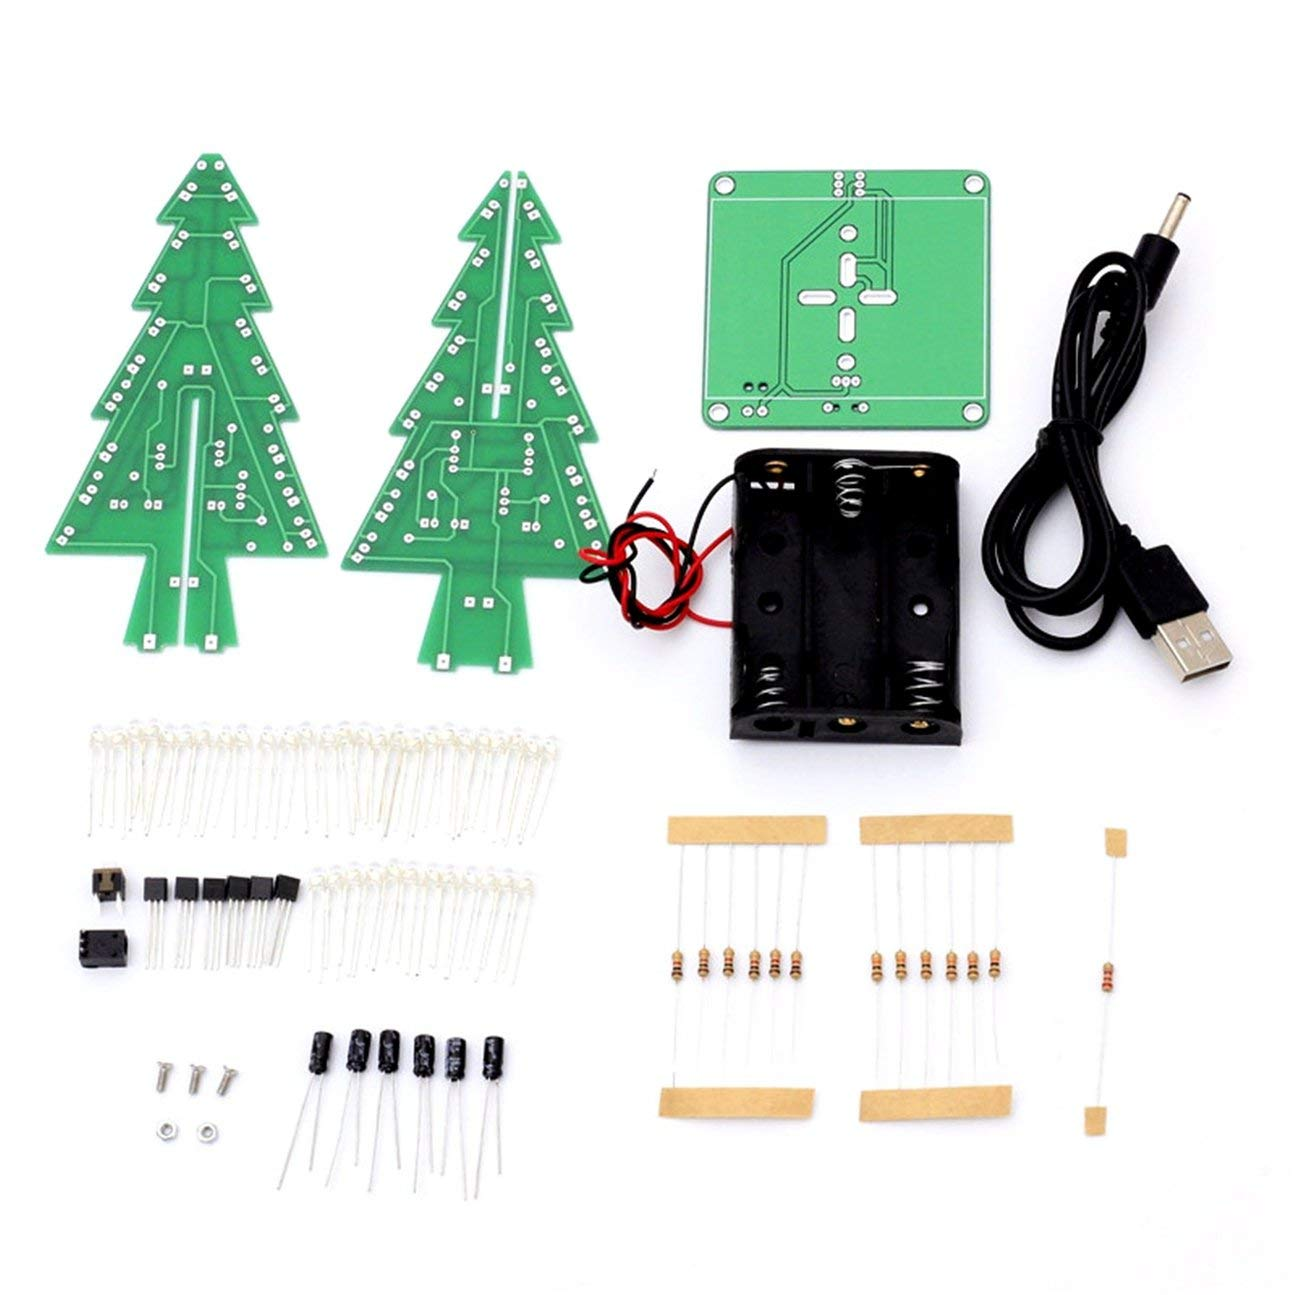 Decoraci/ón electr/ónica LED Flash Circuit Parts /Árbol de Navidad 3D /Árbol LED DIY Kit materiales respetuosos con el medio ambiente multicolor mezclado multicolor mezcla